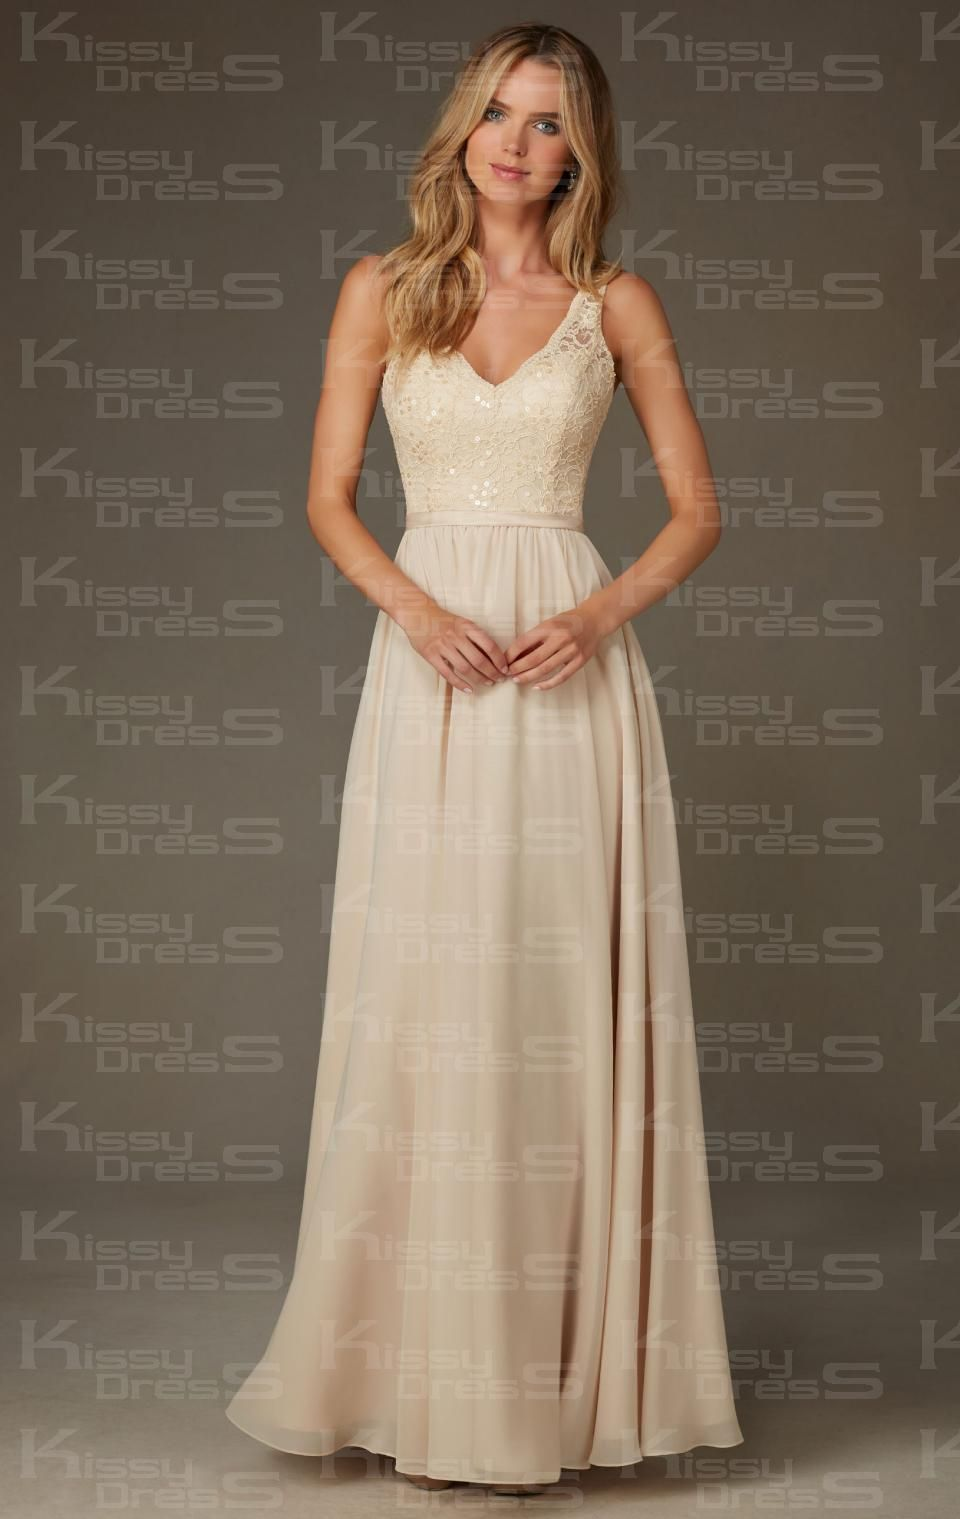 Kissybridesmaidsunique champagne long bridesmaid dress kissybridesmaidsunique champagne long bridesmaid dress bnncl0001 ombrellifo Image collections